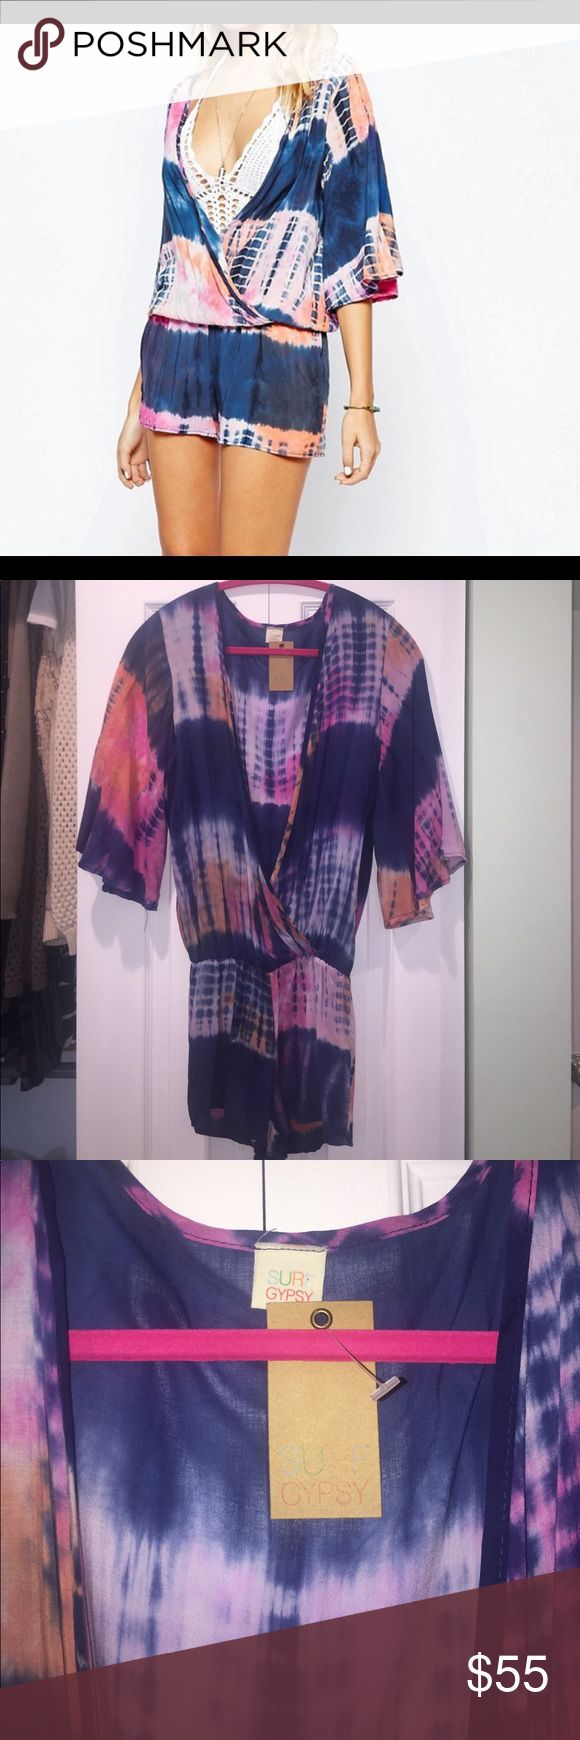 NWT Sz small Surf Gypsy romper coverup Super soft beach romper in navy/orange/pink tie dye colors. Size small (4-6) and new with tags by Surf Gypsy. This is perfect over a bikini!!! Surf Gypsy Swim Coverups